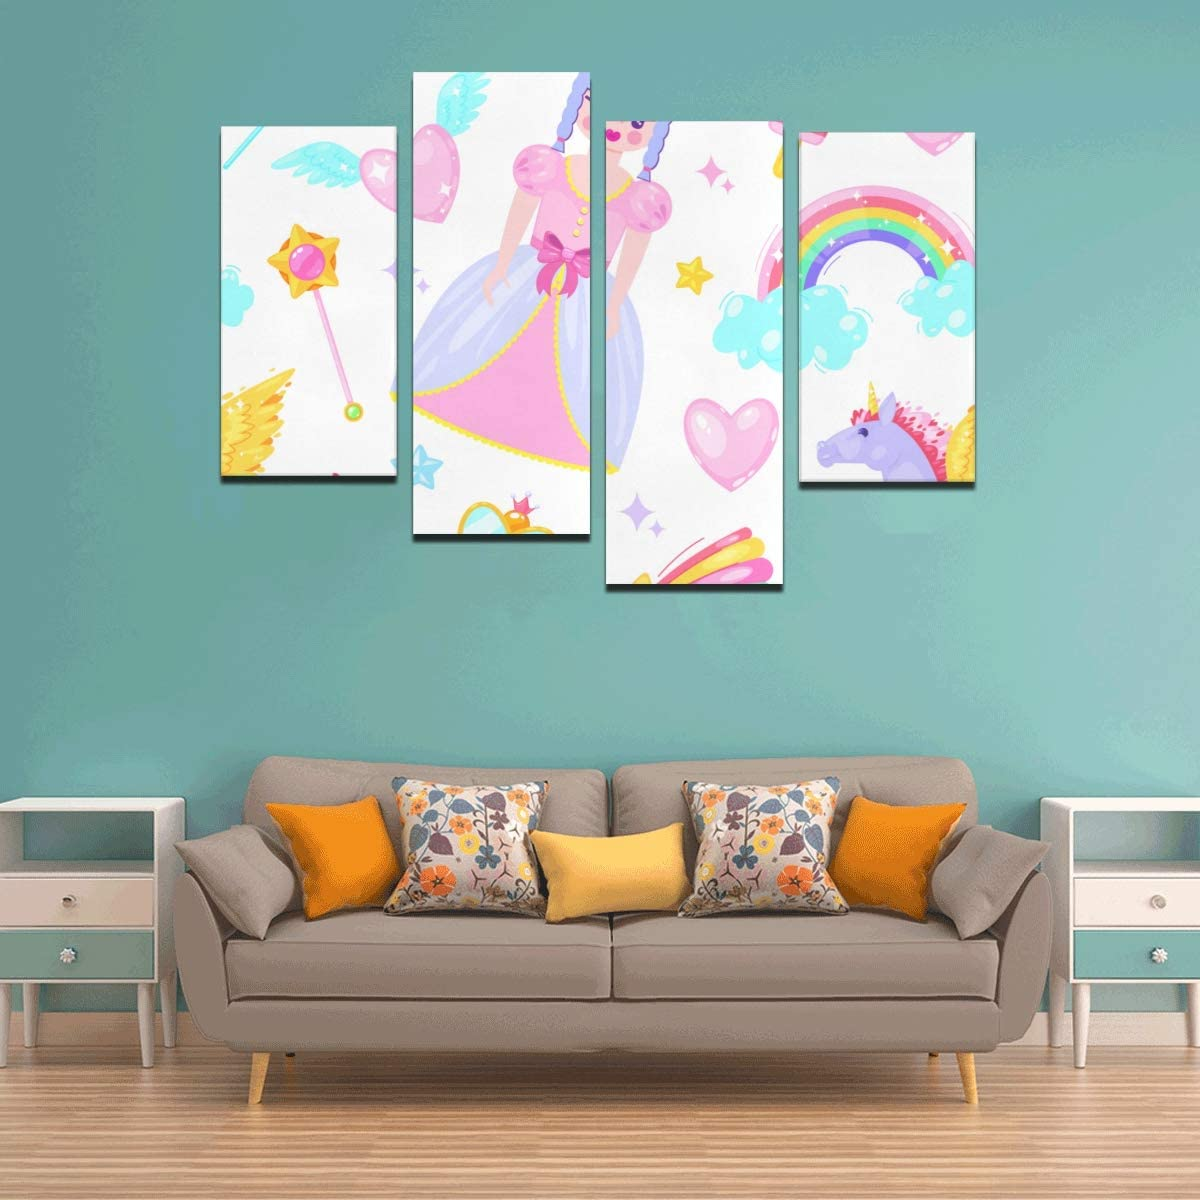 Amazon Com Bluehui 4 Pieces Walls Decor Magic Wand Girl Fantasy Home Wall Paint No Frame Living Room Office Hotel Home Decor Gift Posters Prints